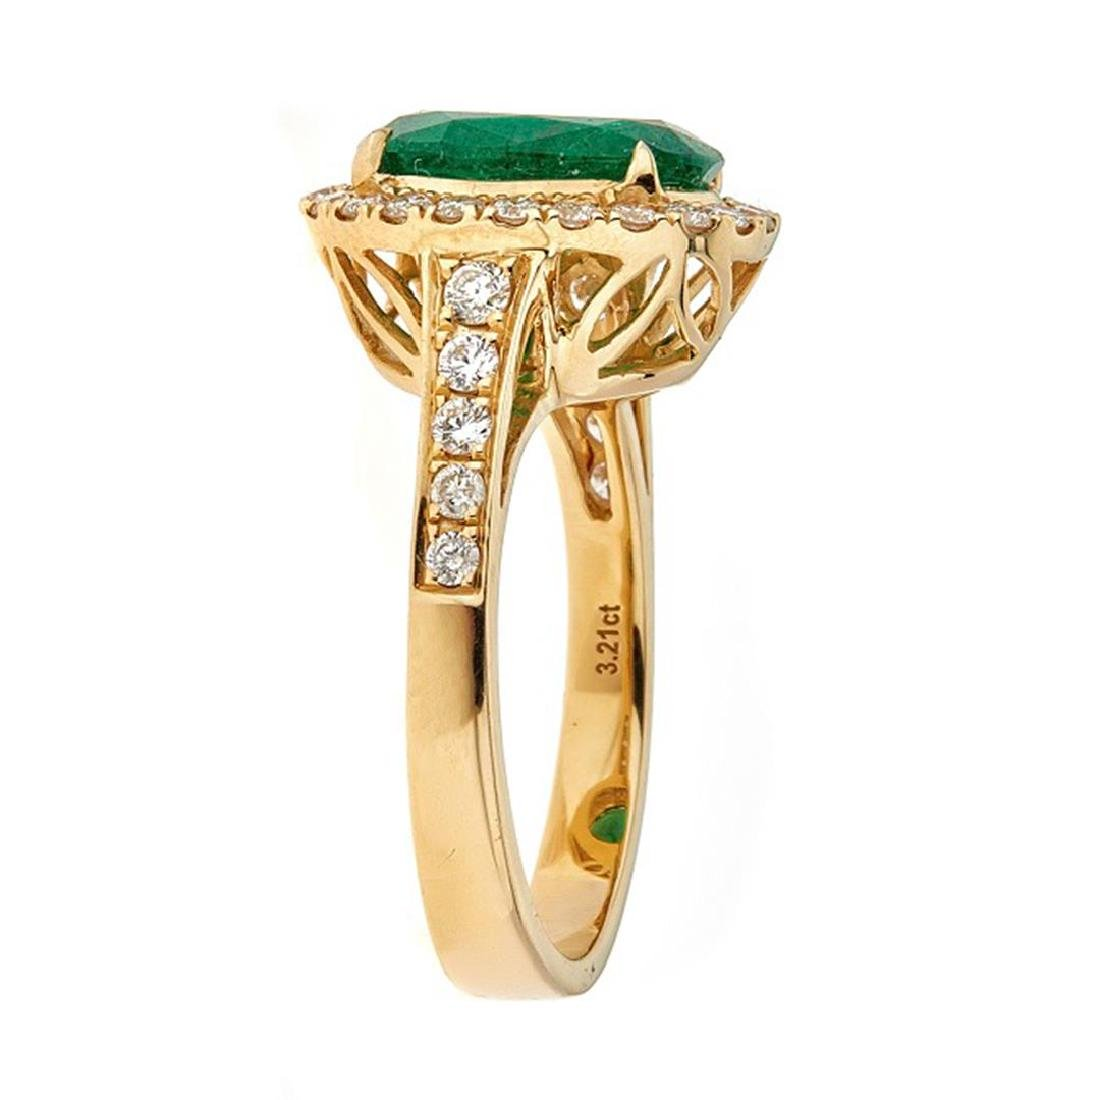 3.00 ctw Emerald and Diamond Ring - 18KT Yellow Gold - 2